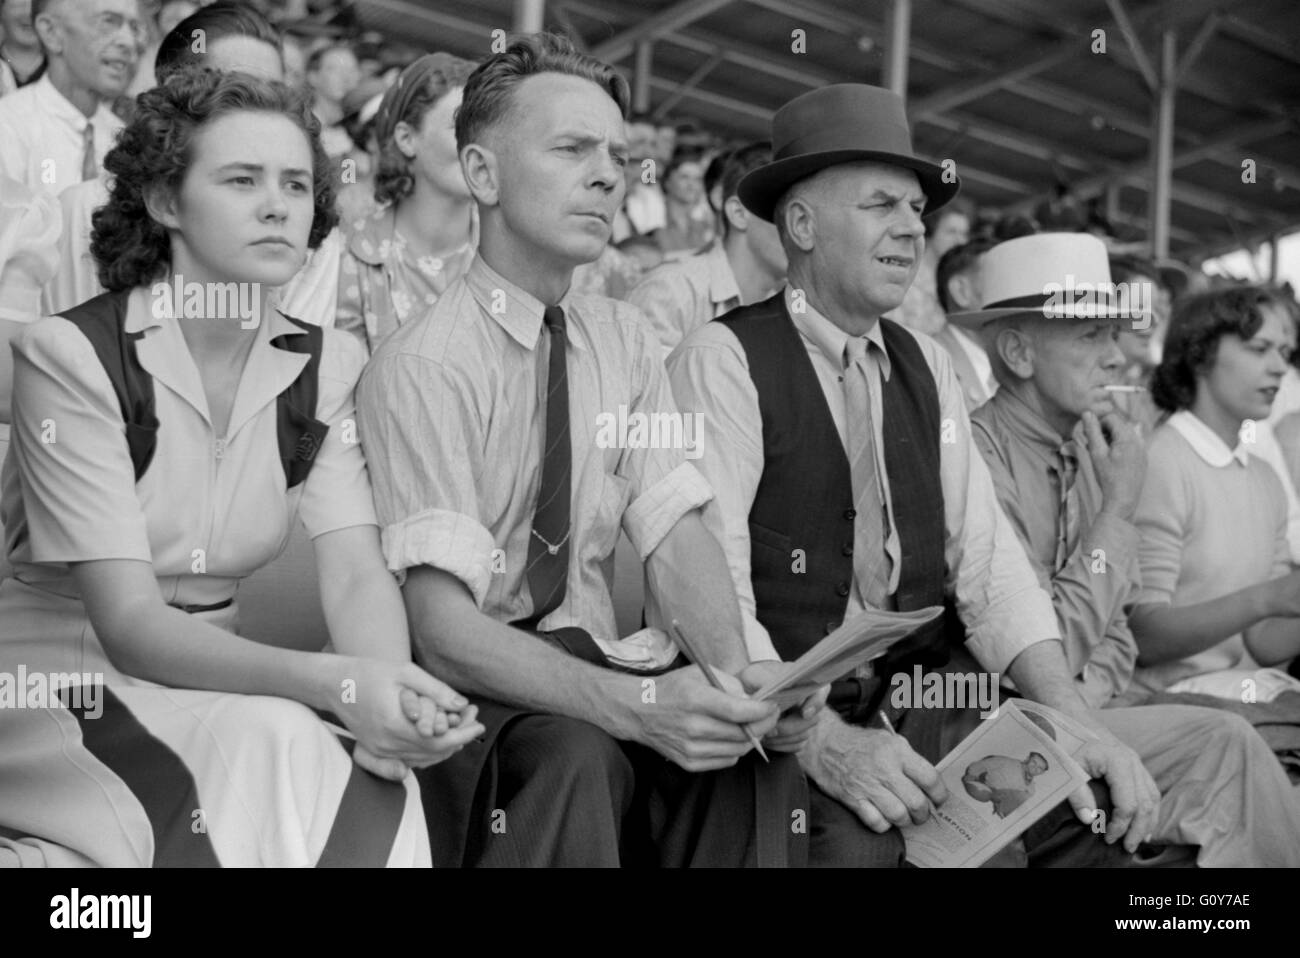 Spectators at Sulky Races at Fair, Rutland, Vermont, USA, by Jack Delano for Farm Security Administration, September - Stock Image